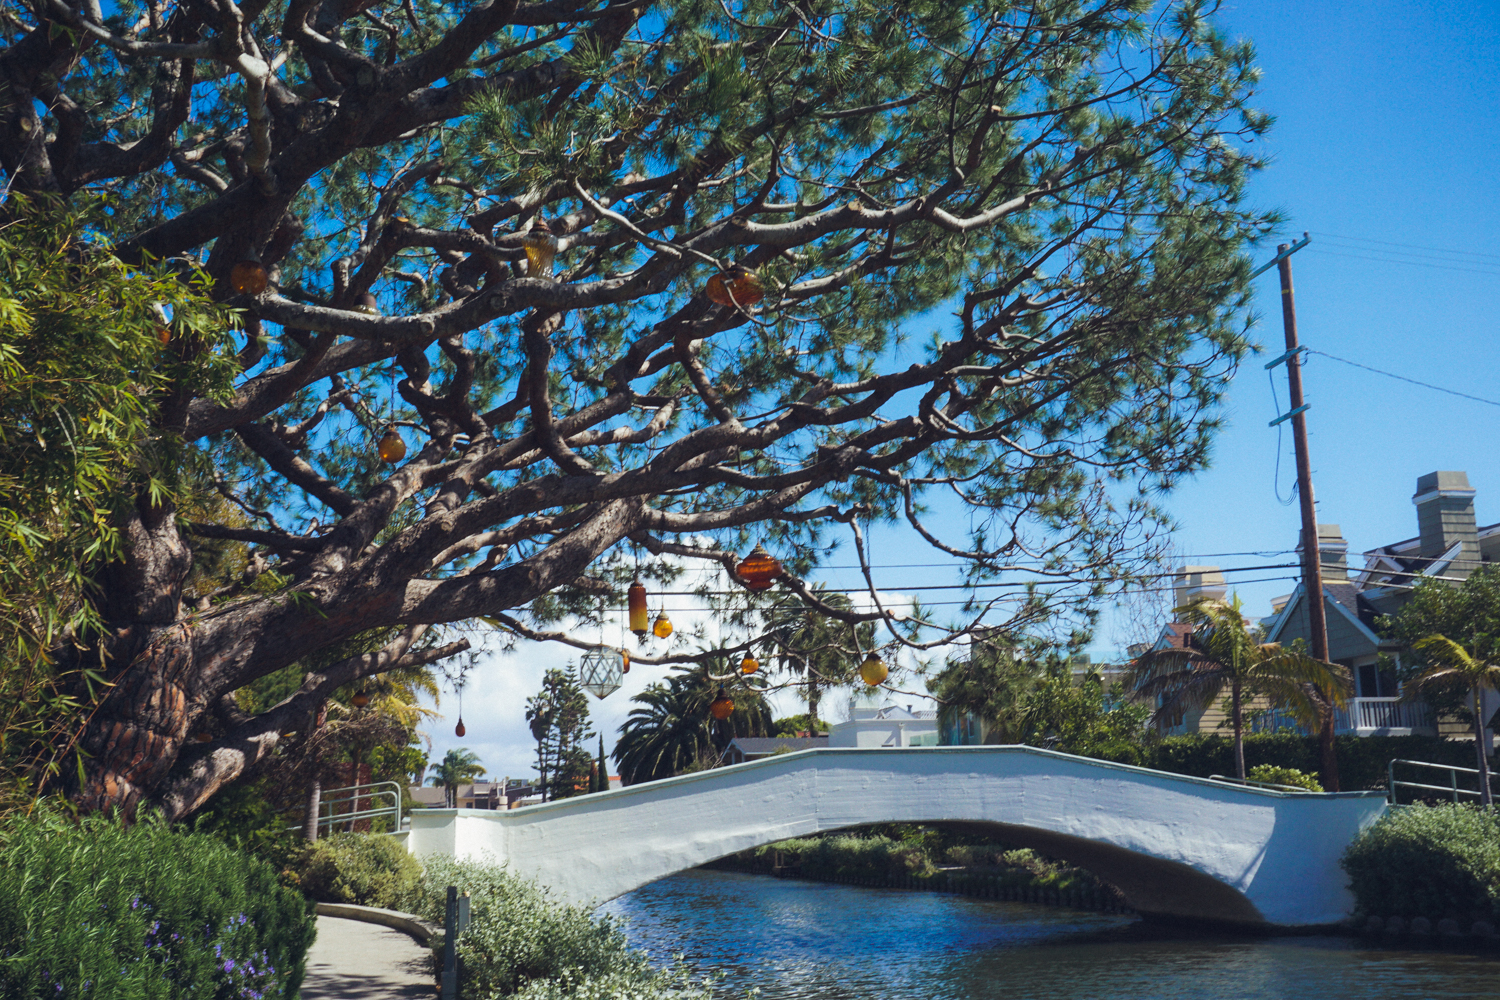 Venice Canals in California on Hygge House